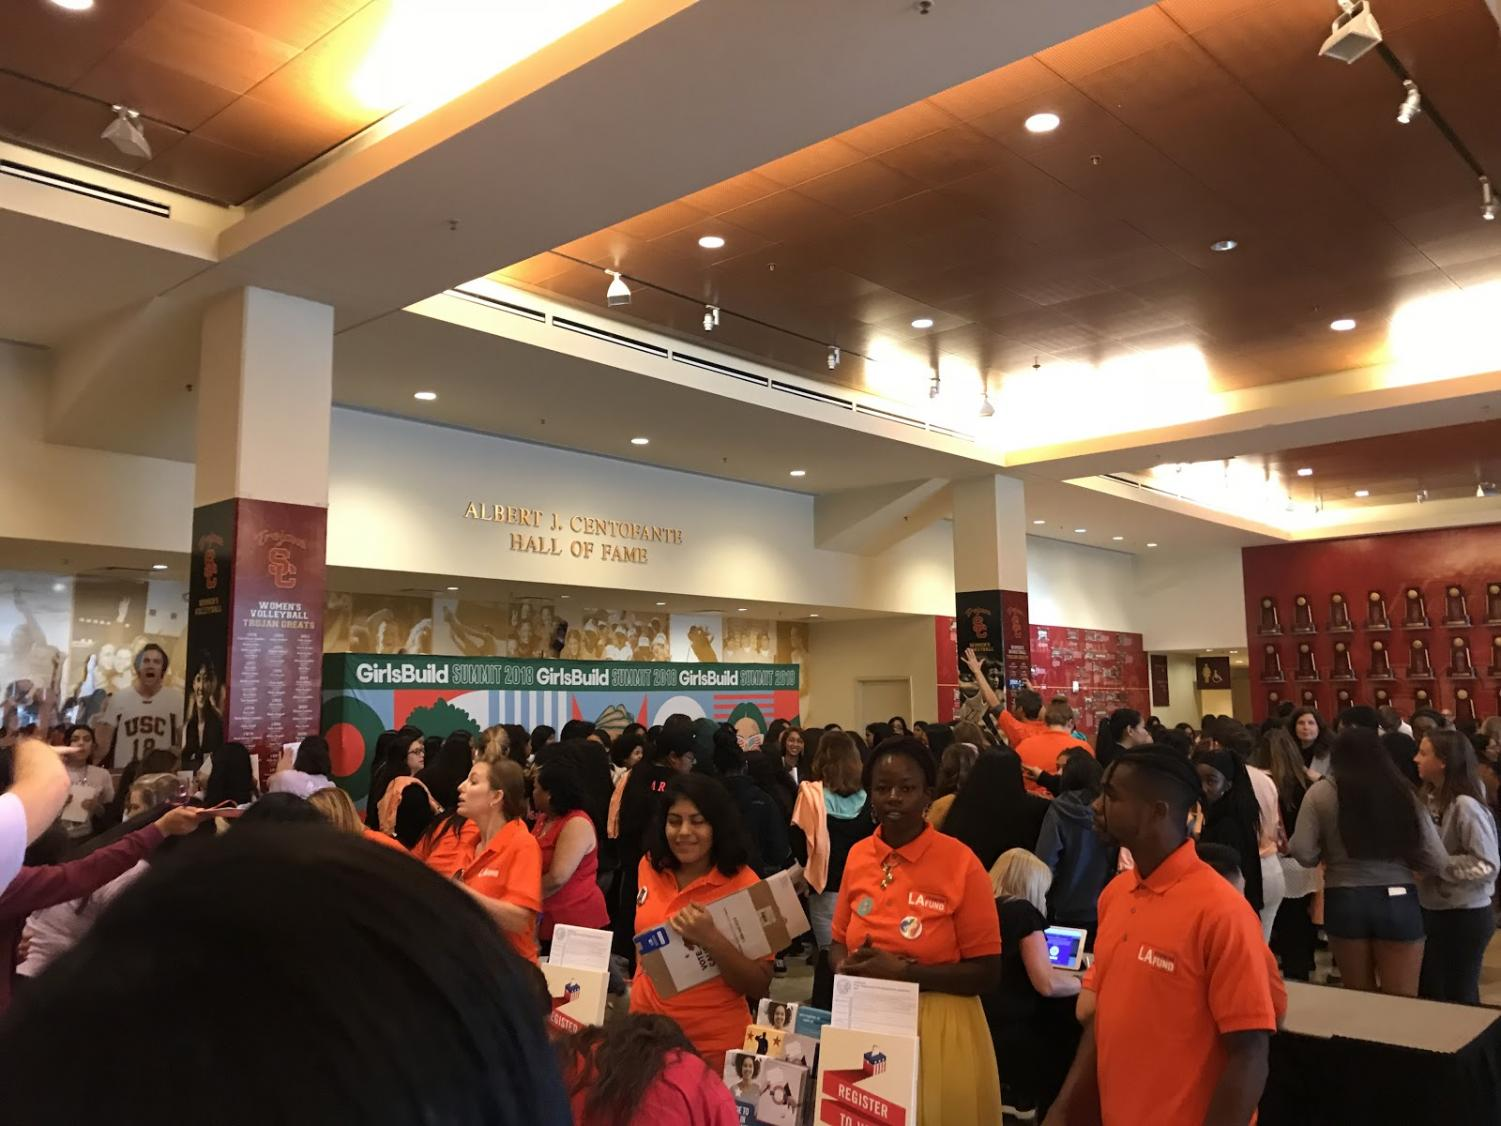 High school students gather at USC's Albert J. Centofante Hall of Fame during registration at the Girls Build LA Summit.